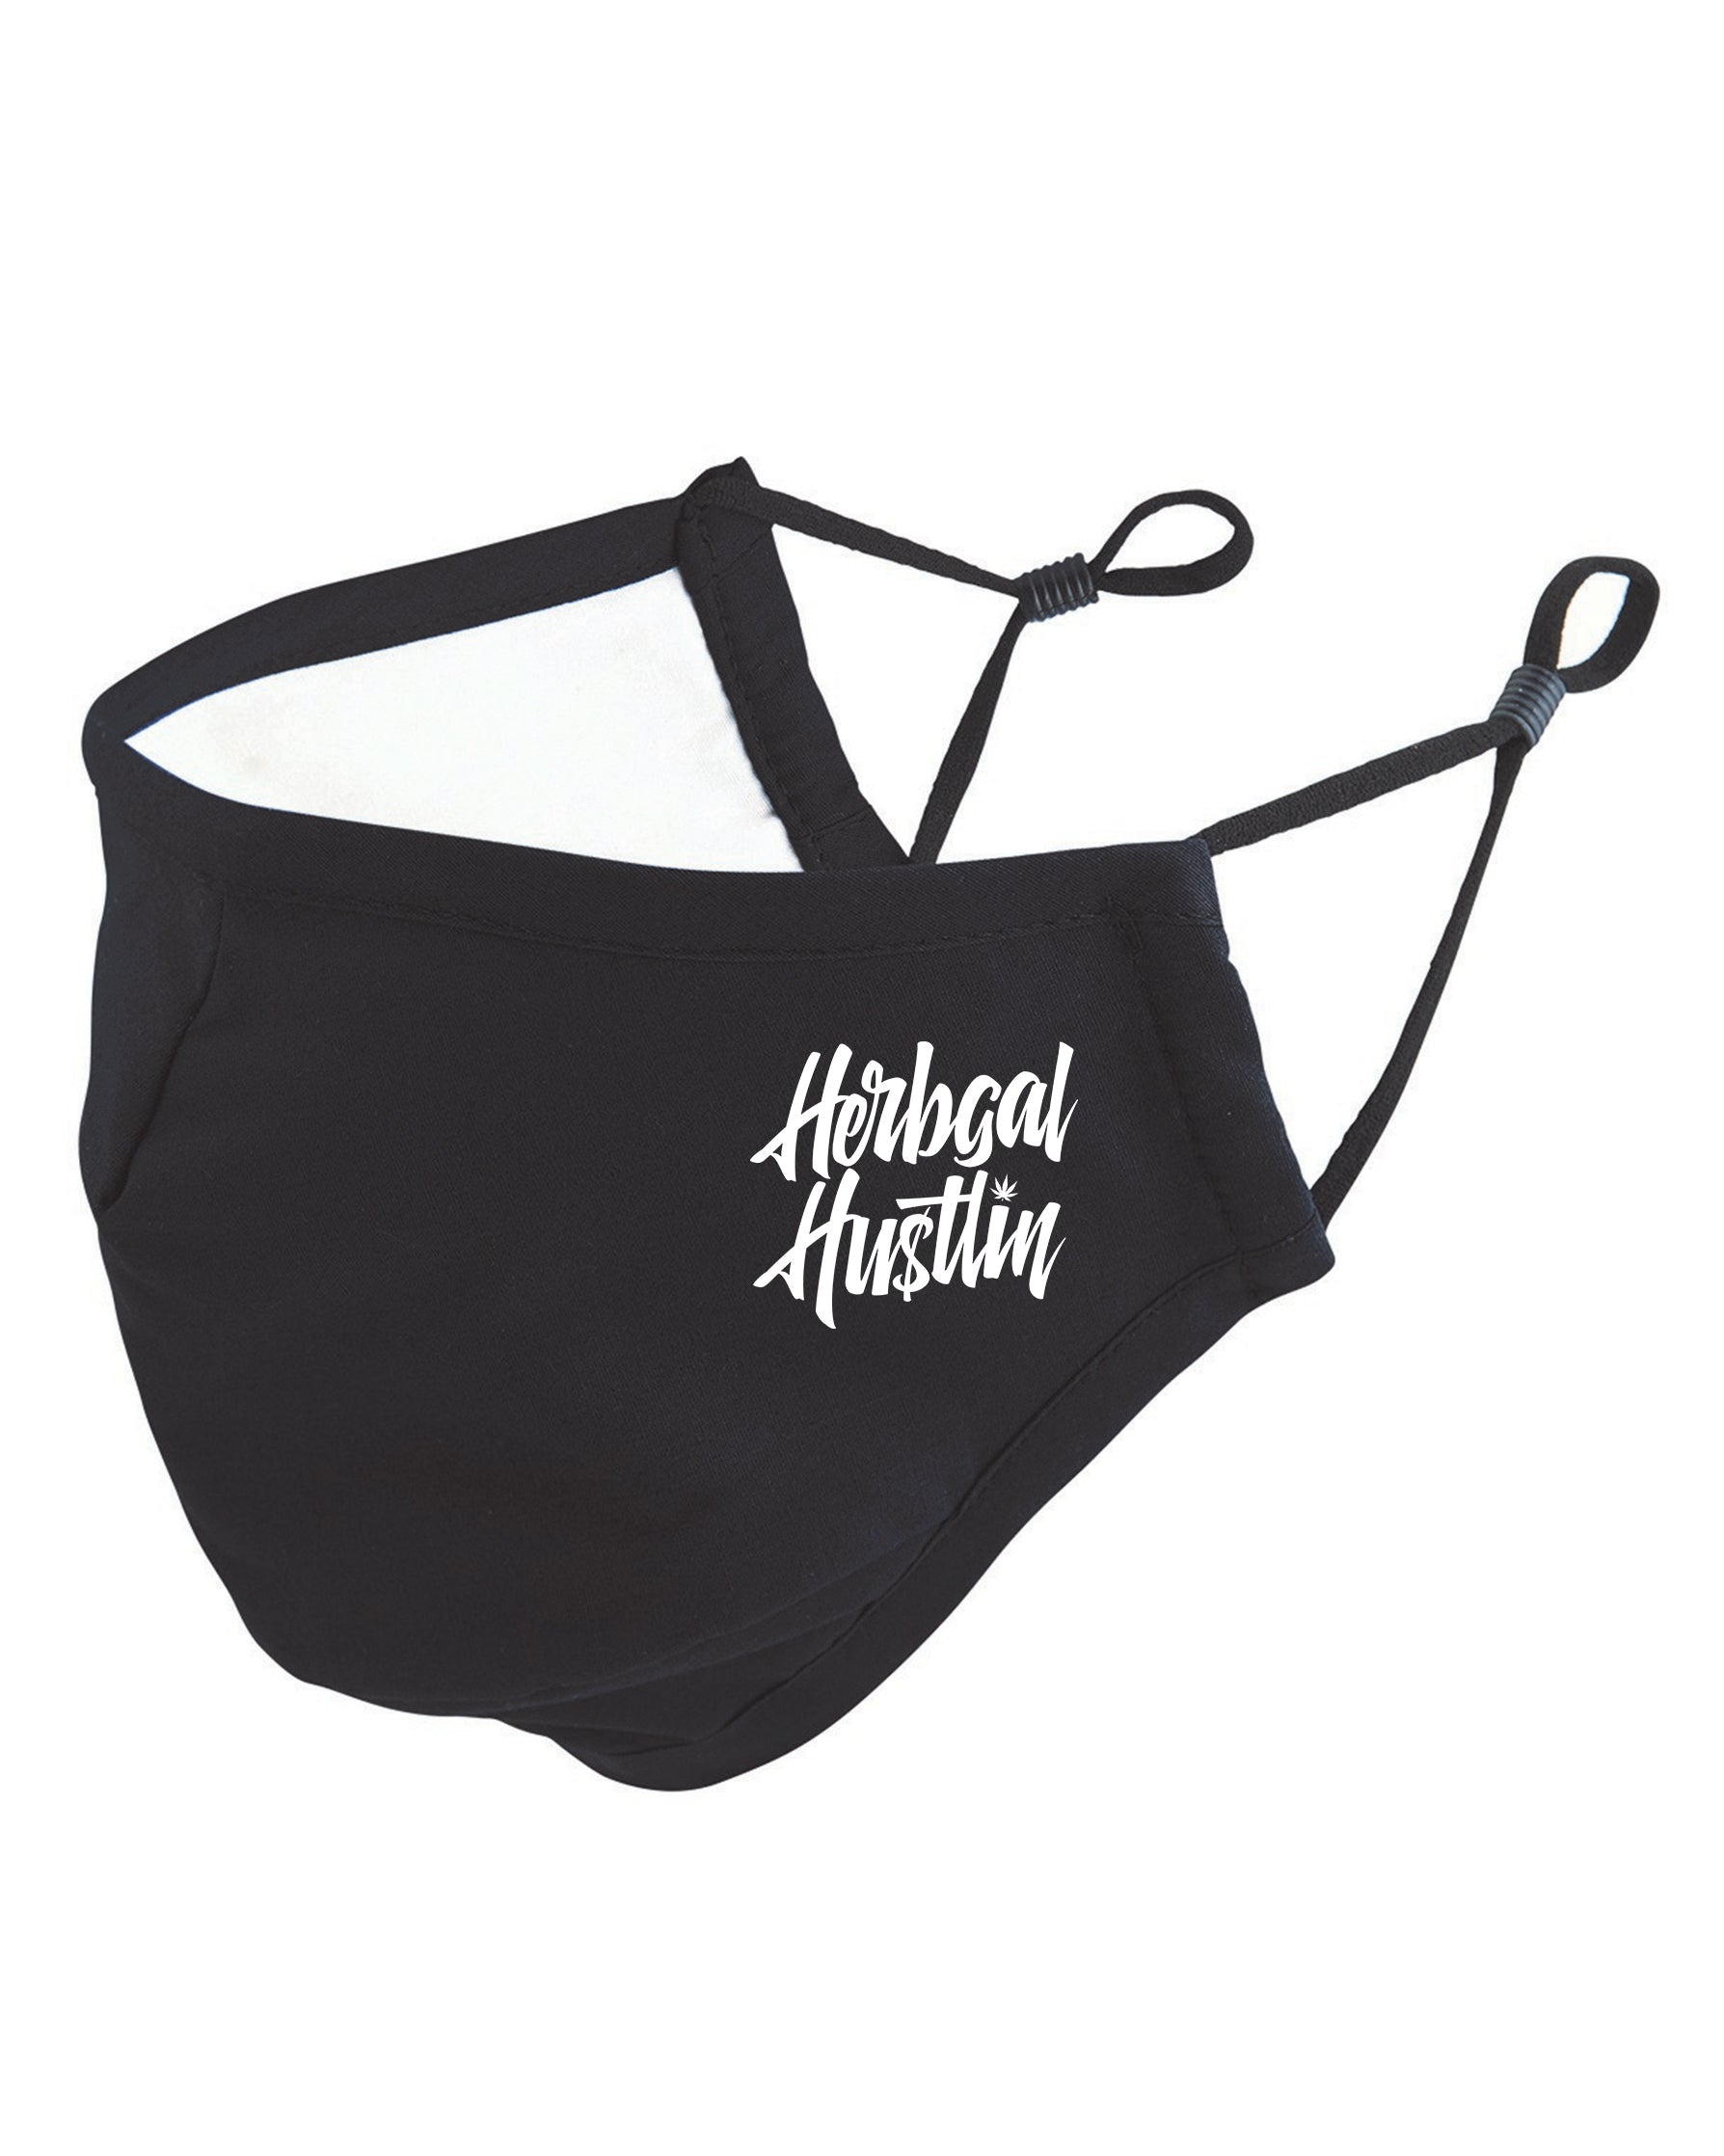 Herbgal Hustlin Script 3 Layer Mask - Black/White